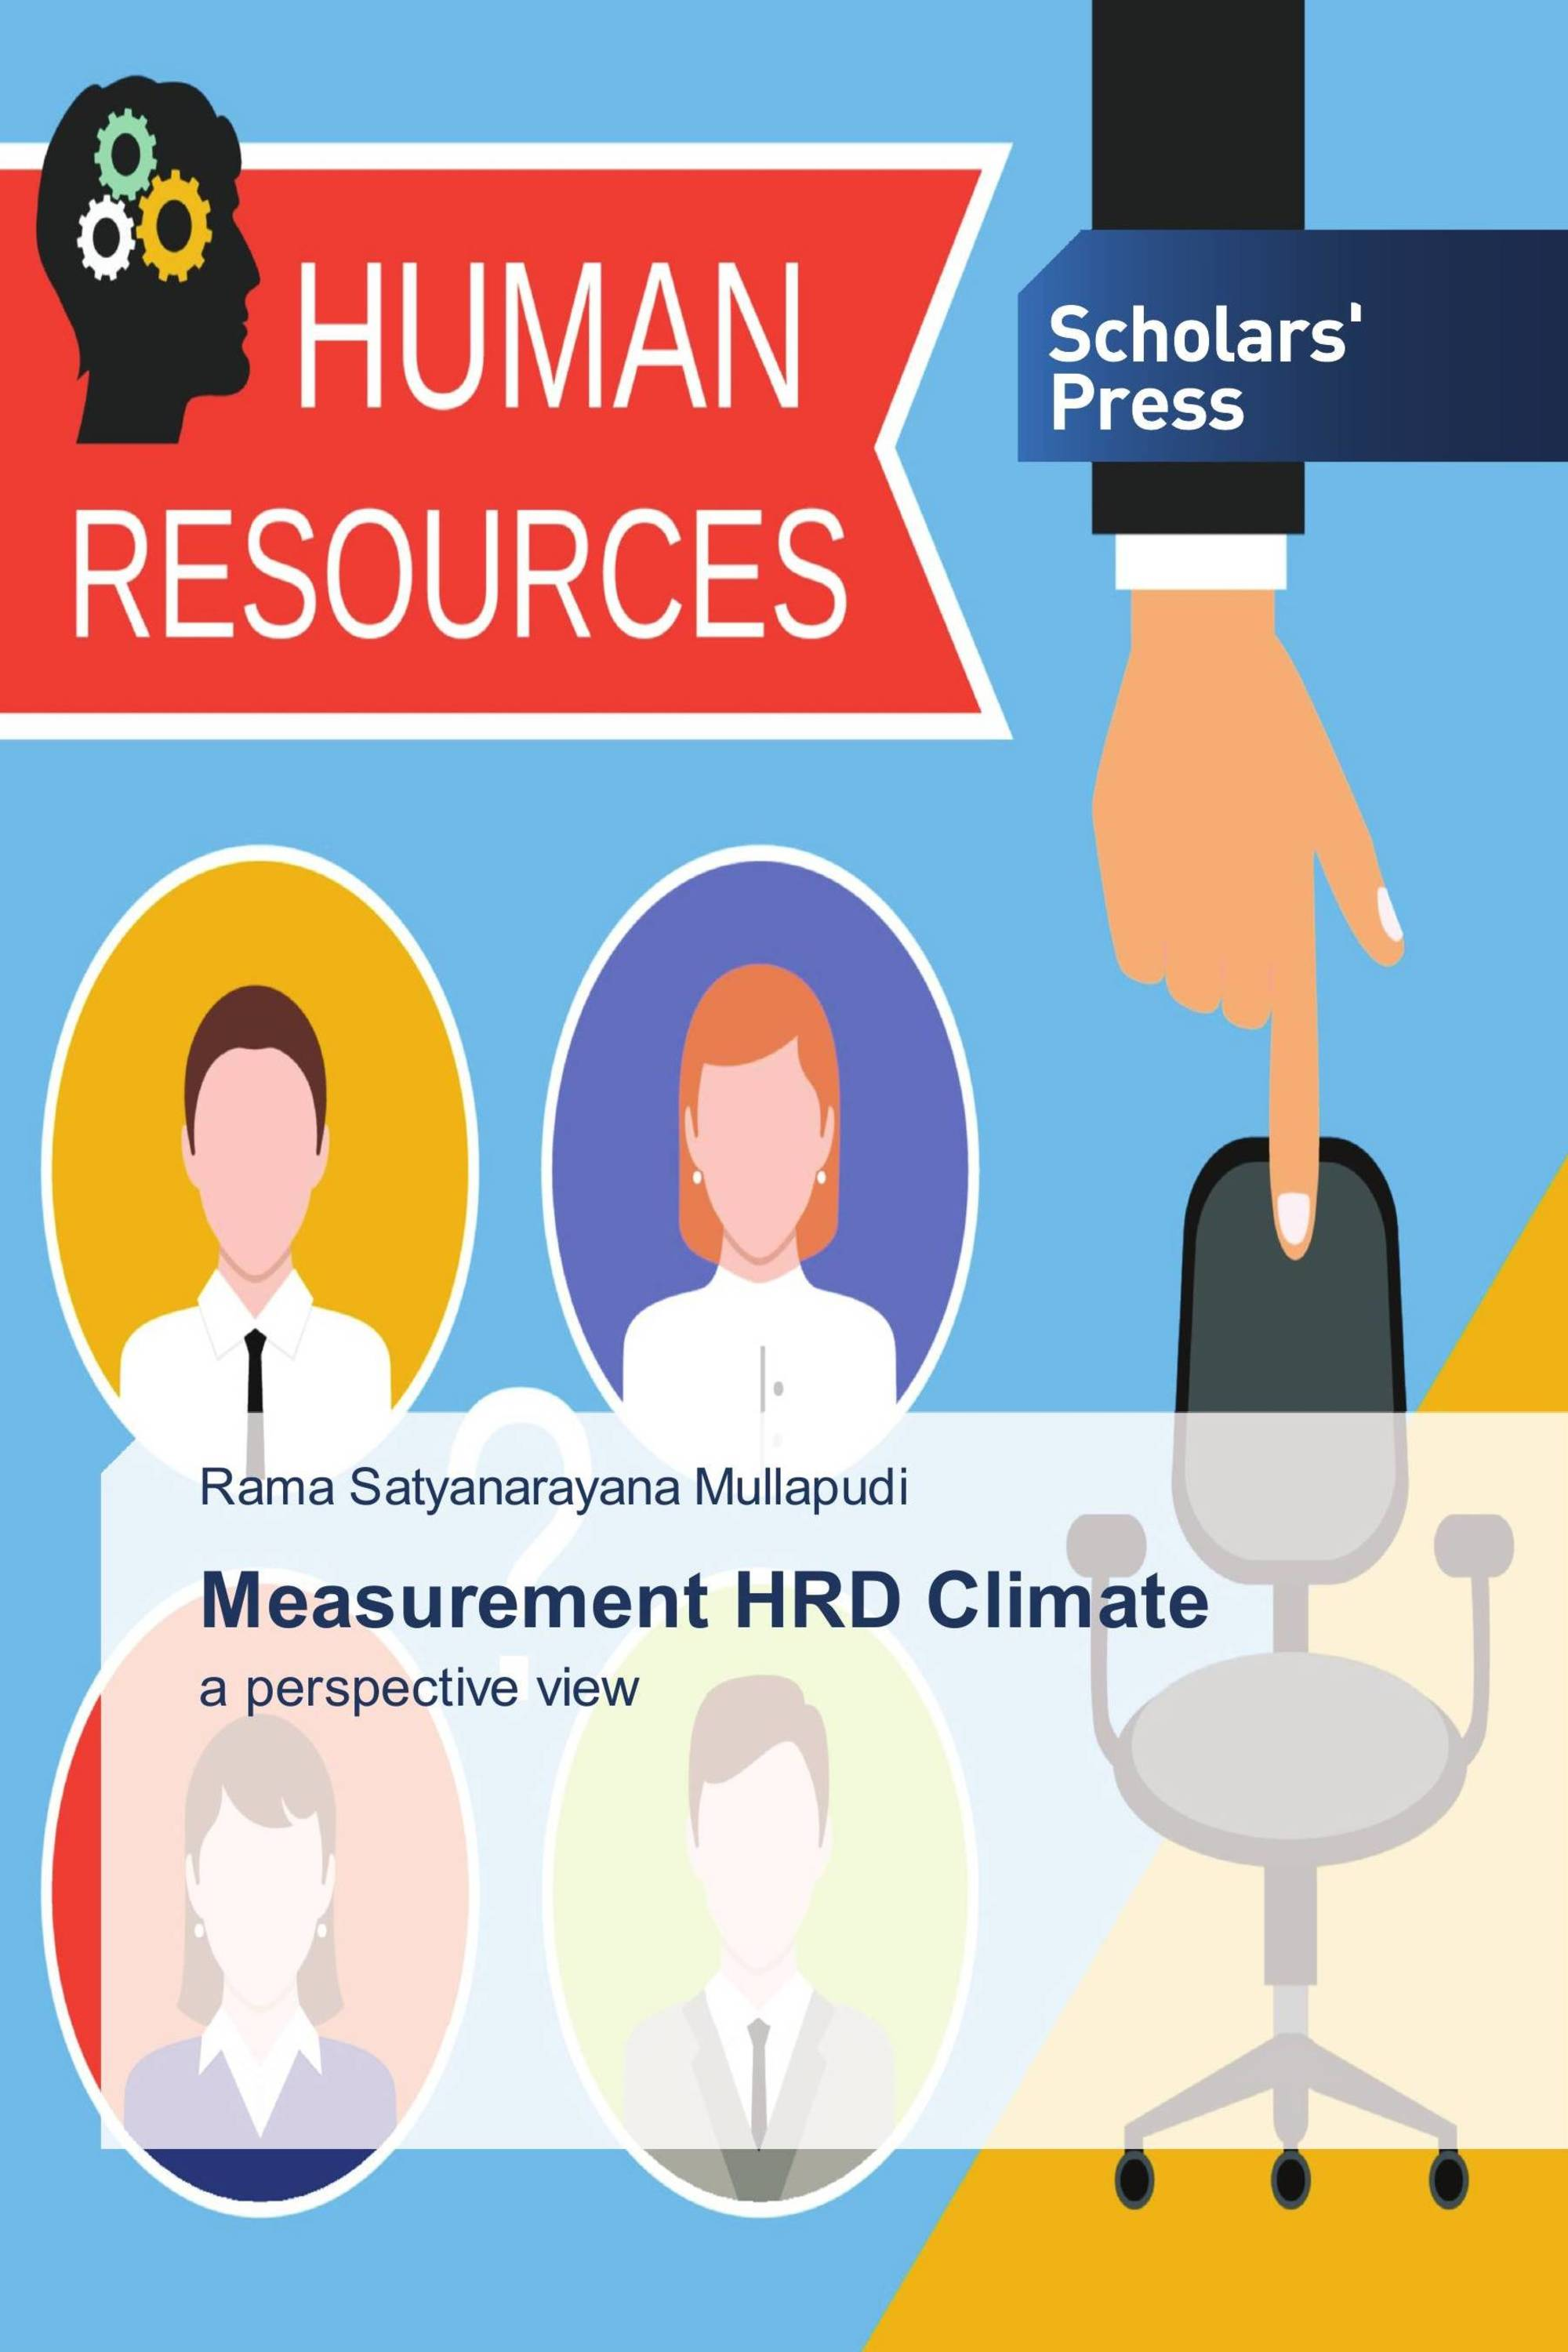 hrd climate Purpose: this paper aims to study the relationship between high-performance work system (hpws) and organizational performance and to examine the role of human resource development (hrd) climate in mediating the relationship between hpws and the organizational performance in the context of the power sector of india.